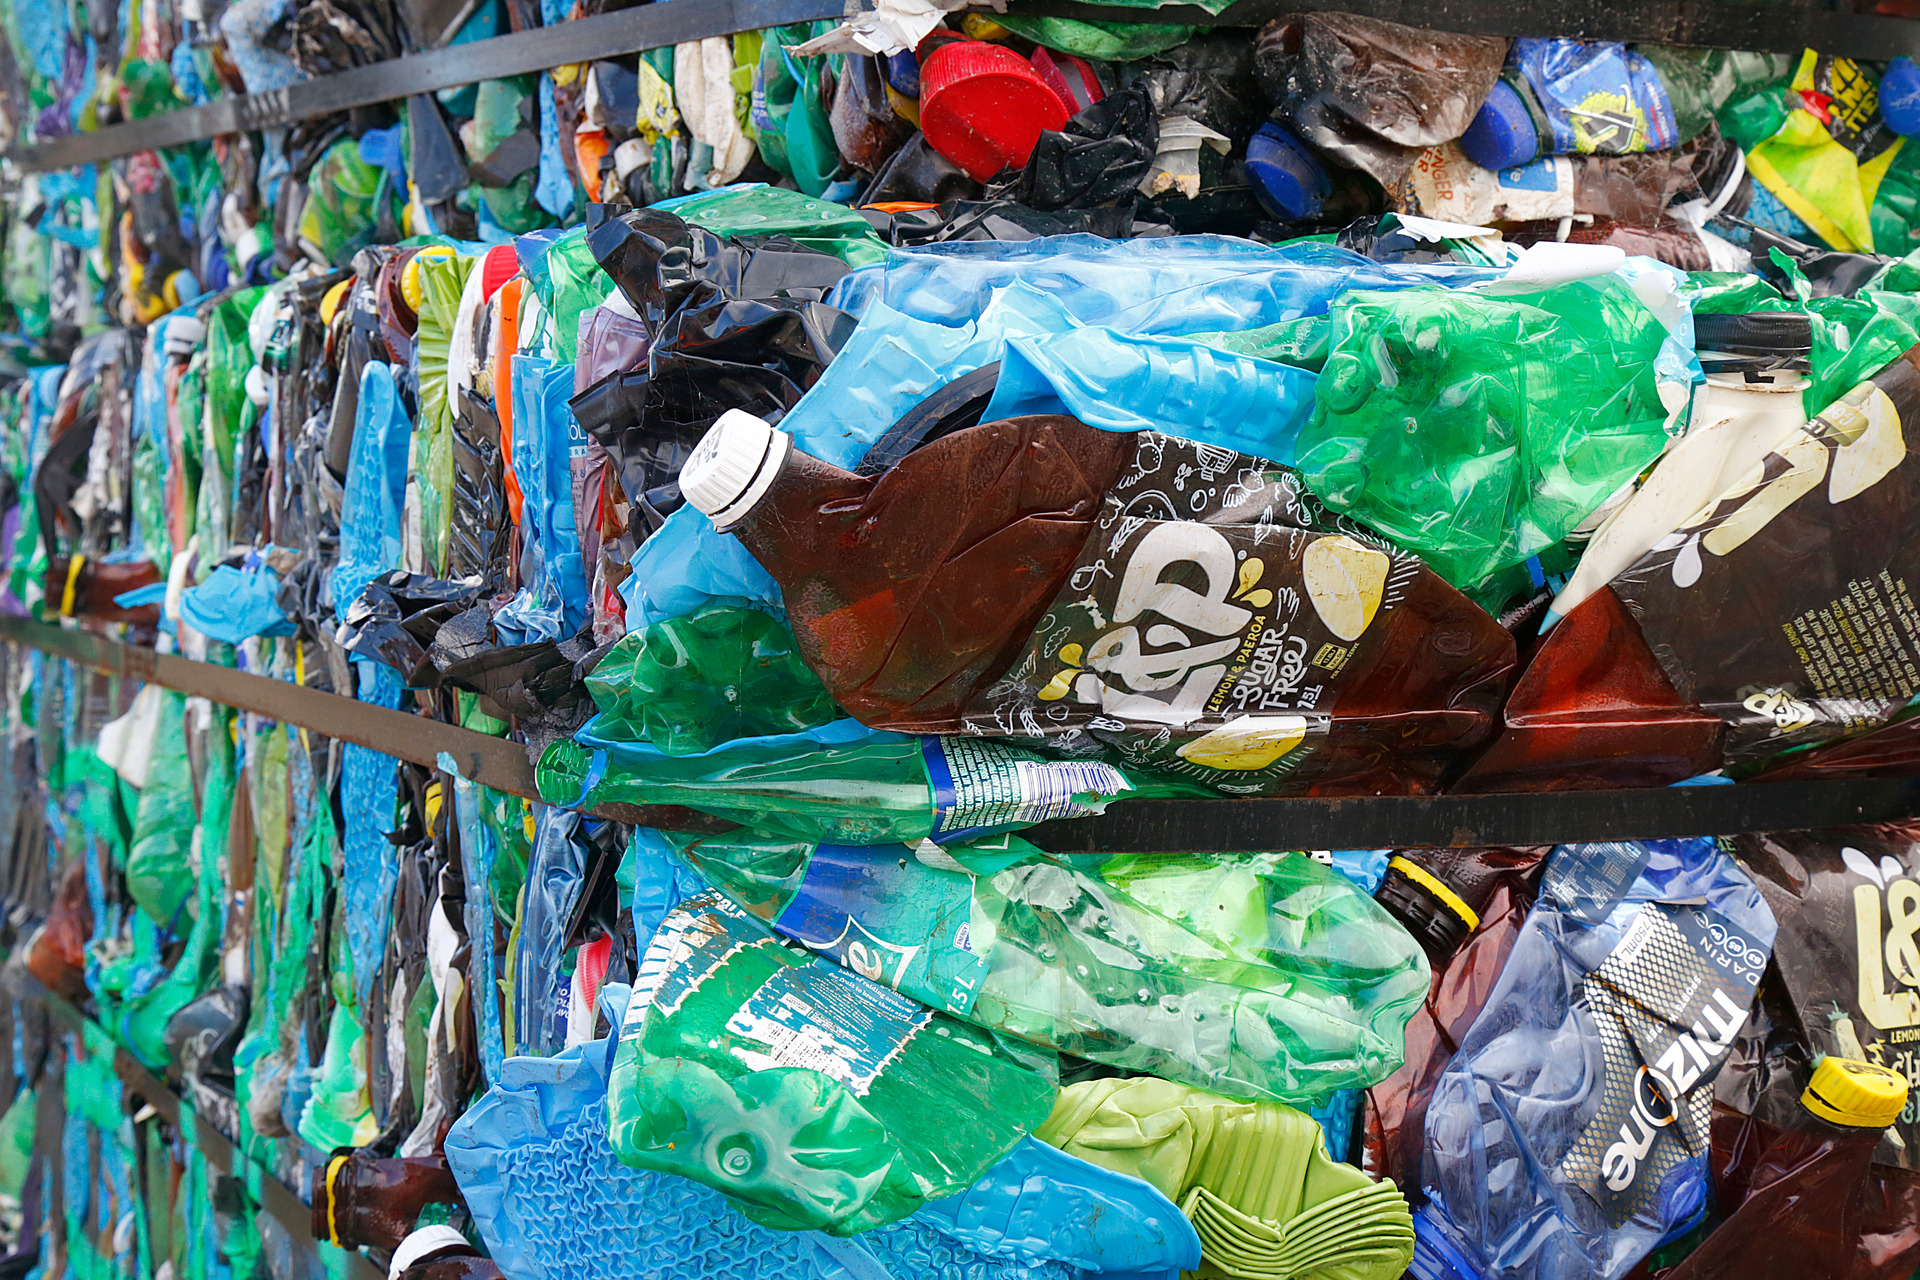 We're recycling wrong: Kiwis dump 97m plastic containers a year in rubbish bins